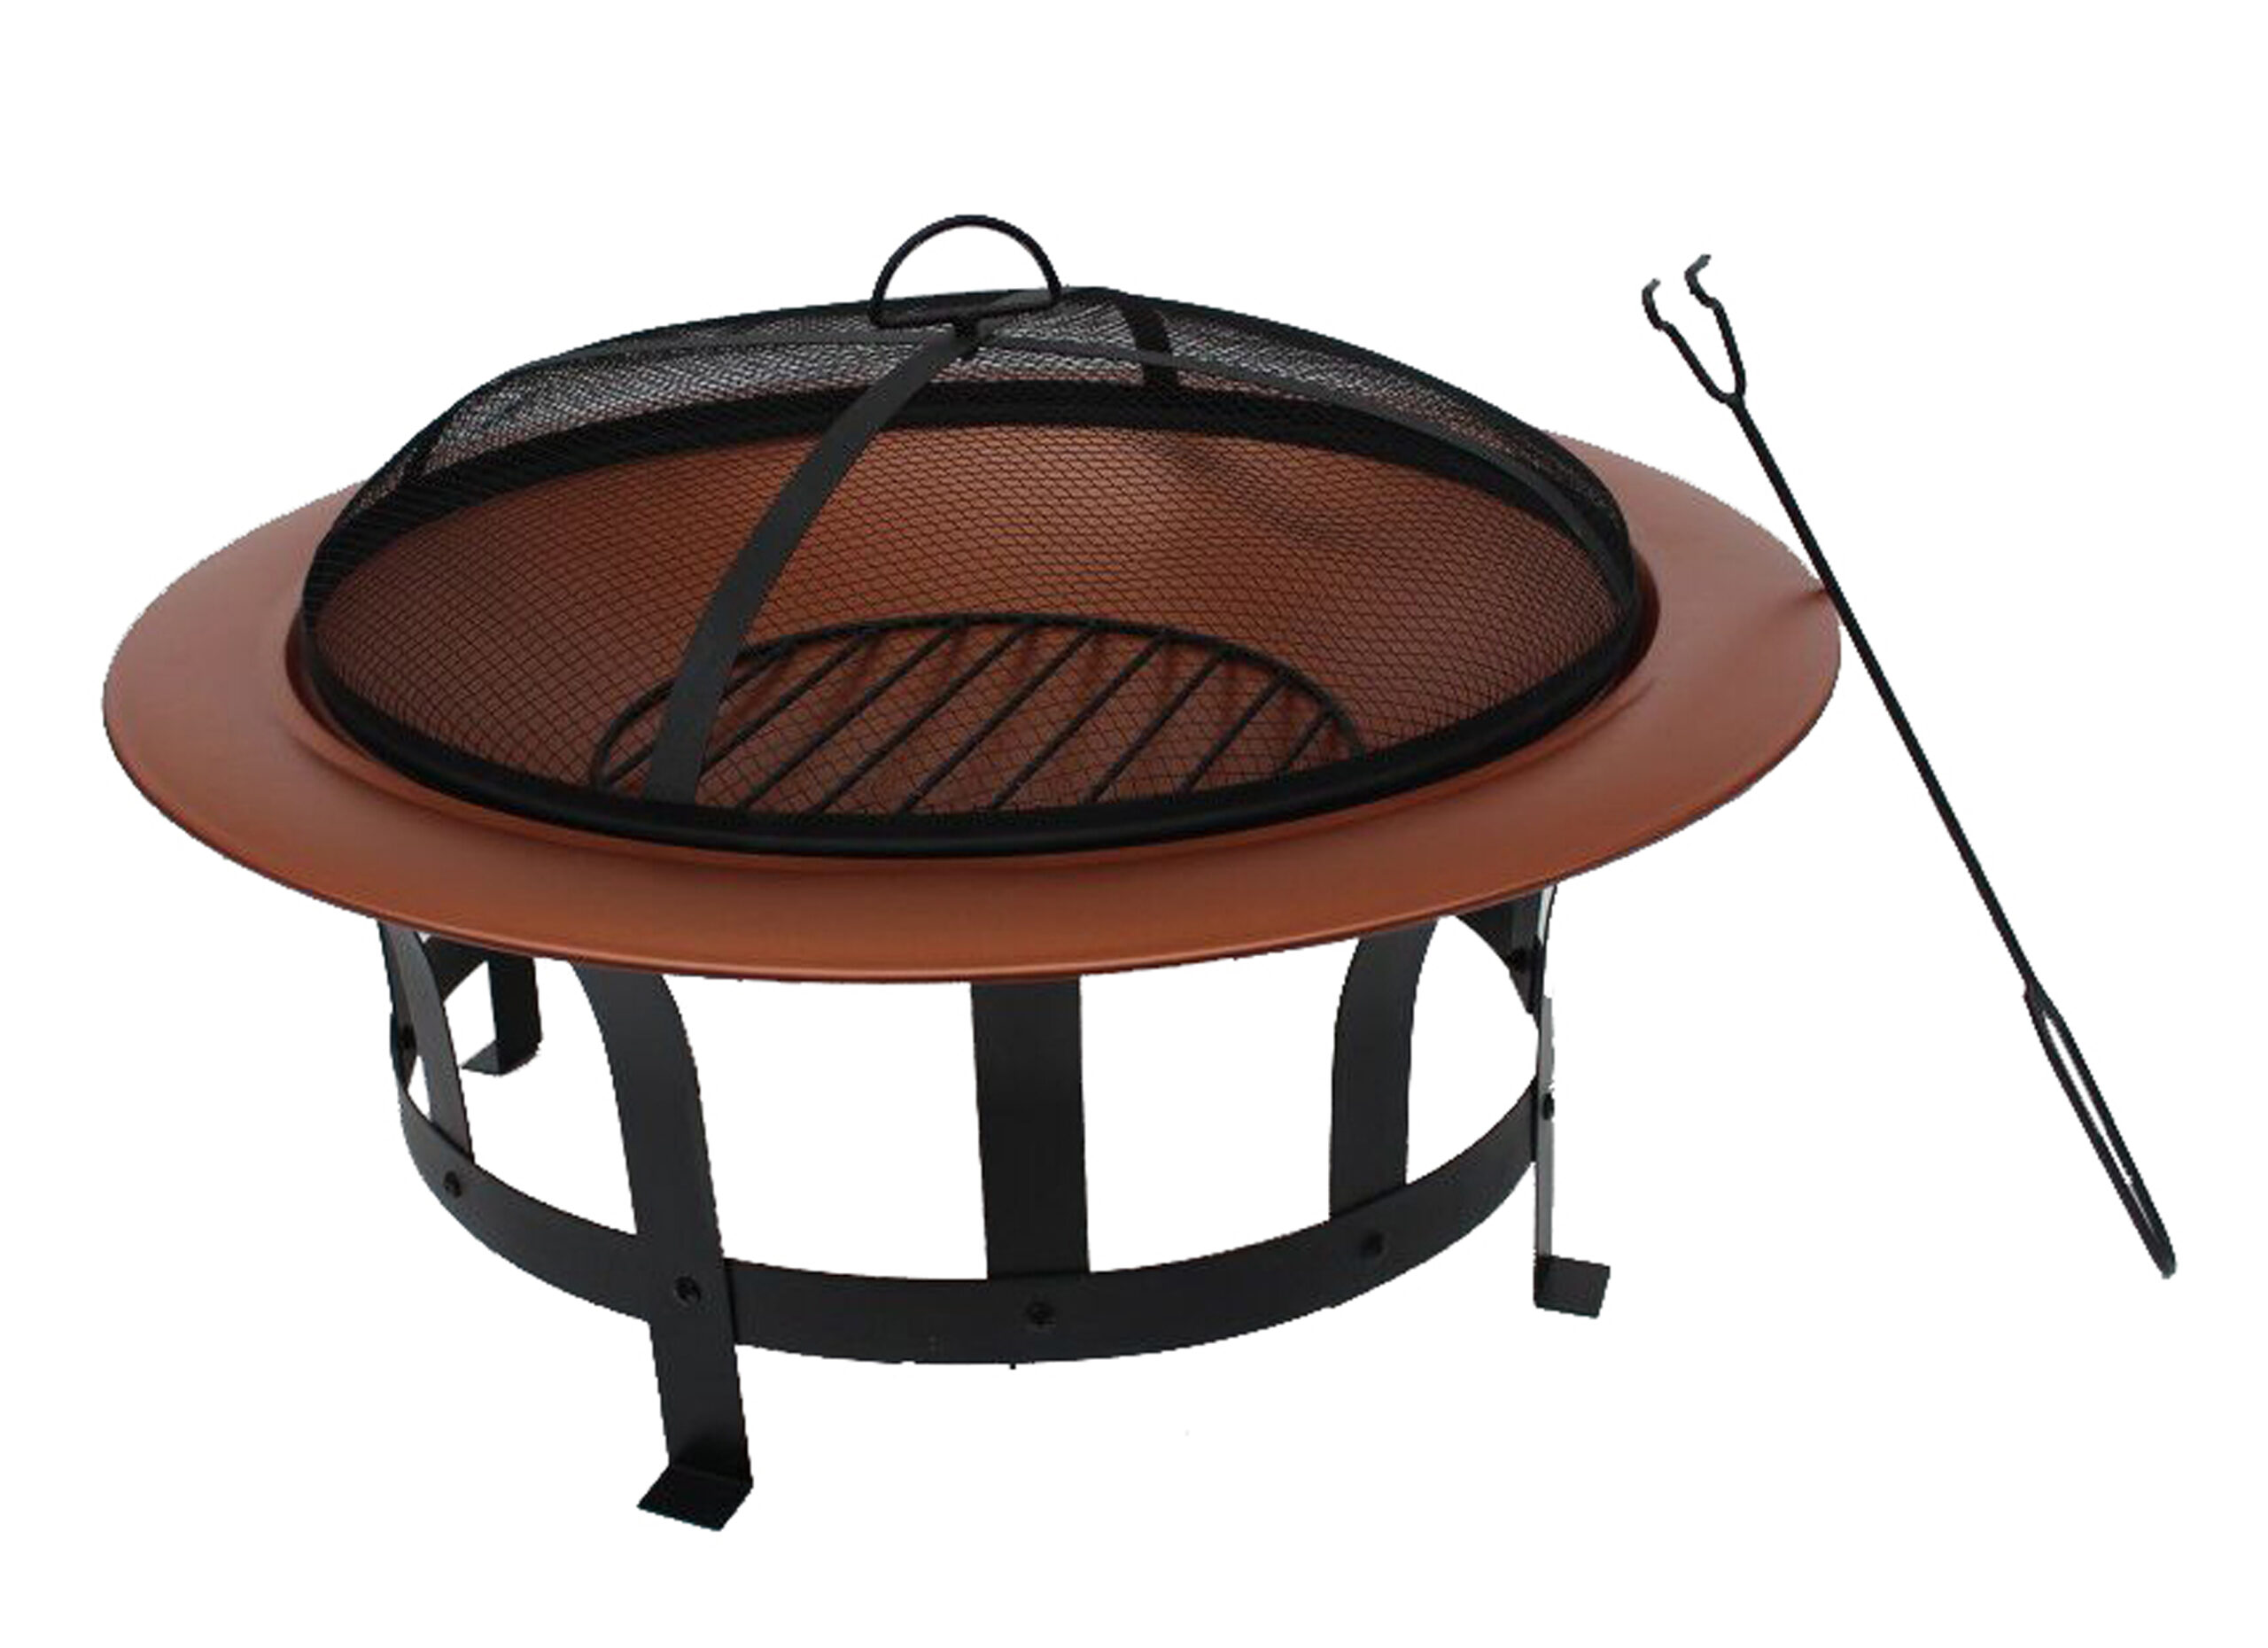 Nicole Miller Patio 30 Inch Wood-Burning Fire Pit in Copper Finish